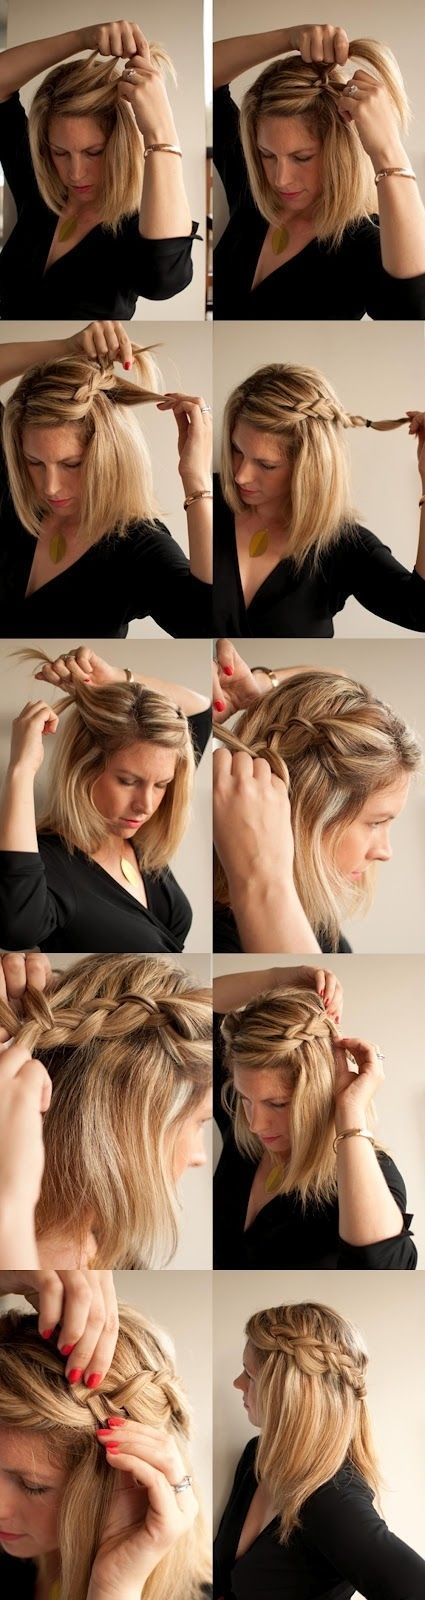 Hairstyles and Women Attire: 5 Hairstyles for Medium Length Hair